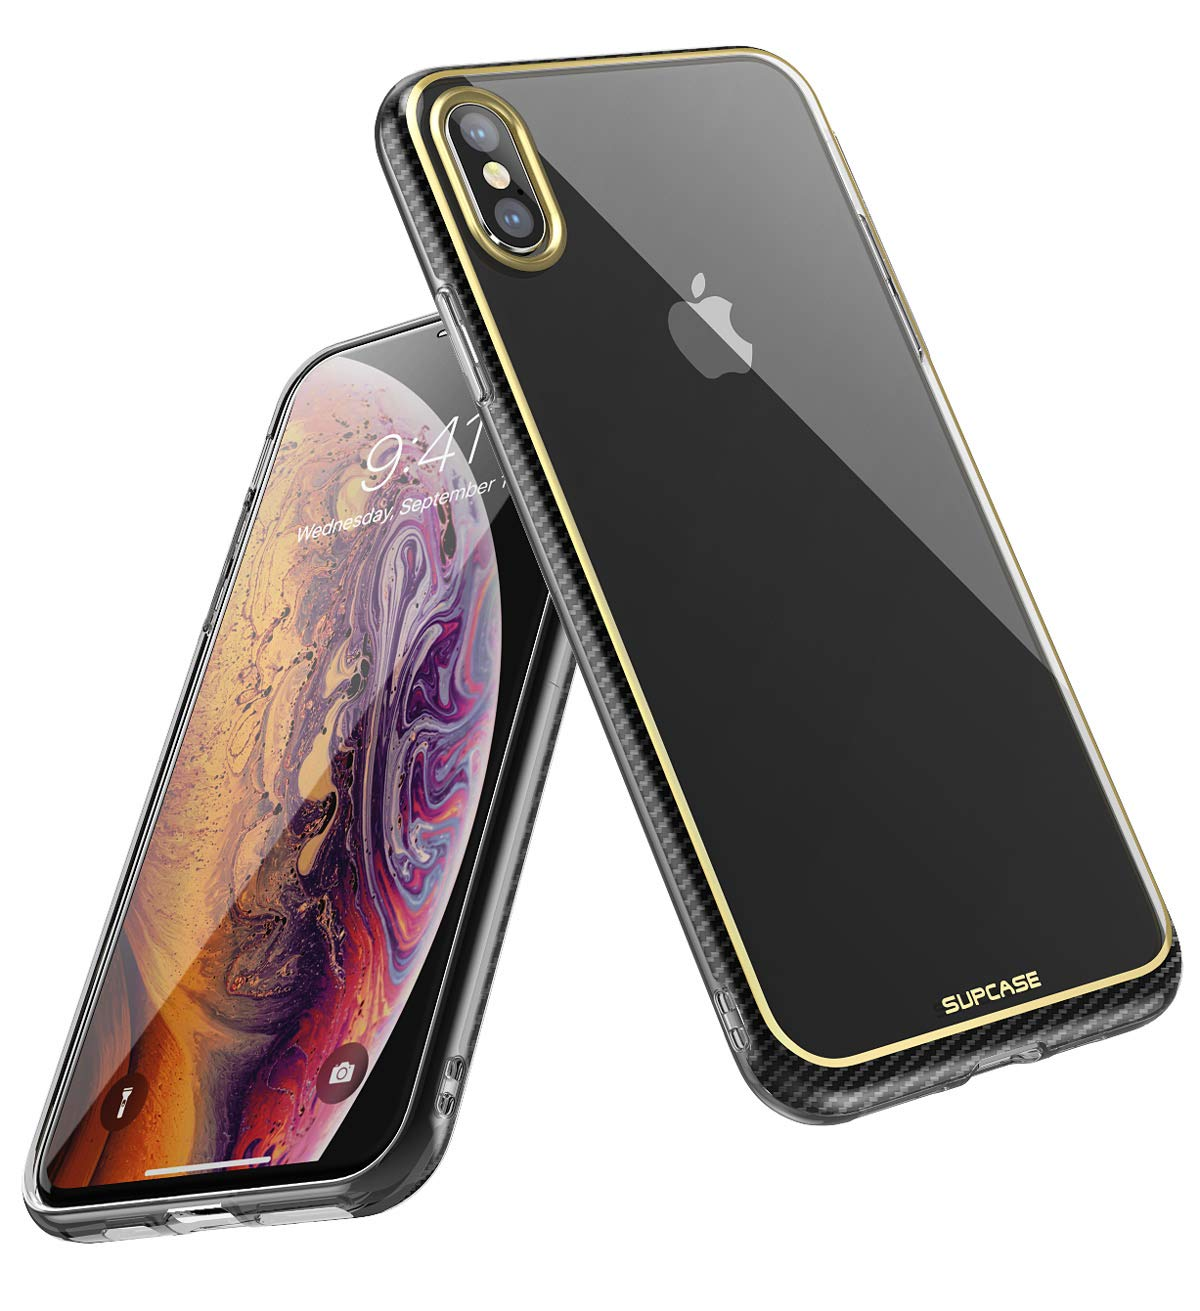 iPhone Xs Case, iPhone X Case, SUPCASE Unicorn Beetle Metro Series Slim Soft TPU Clear Cover for Apple iPhone X 2017/ iPhone Xs 2018 (Gold)